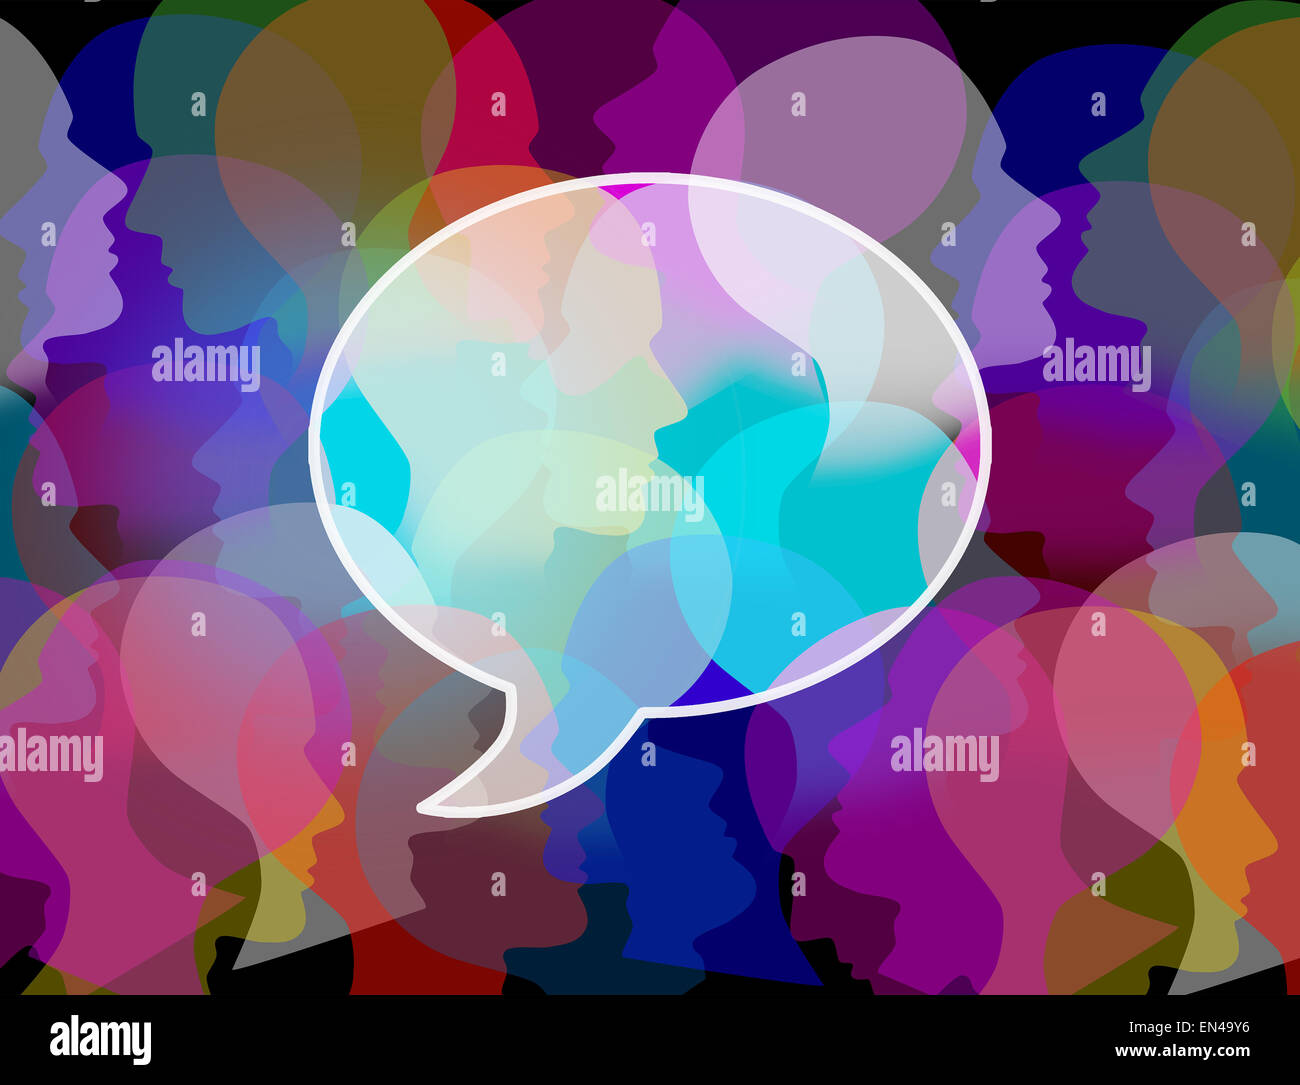 People crowd symbol as a large public group shaped as a speach or chat bubble as an icon for society and population - Stock Image